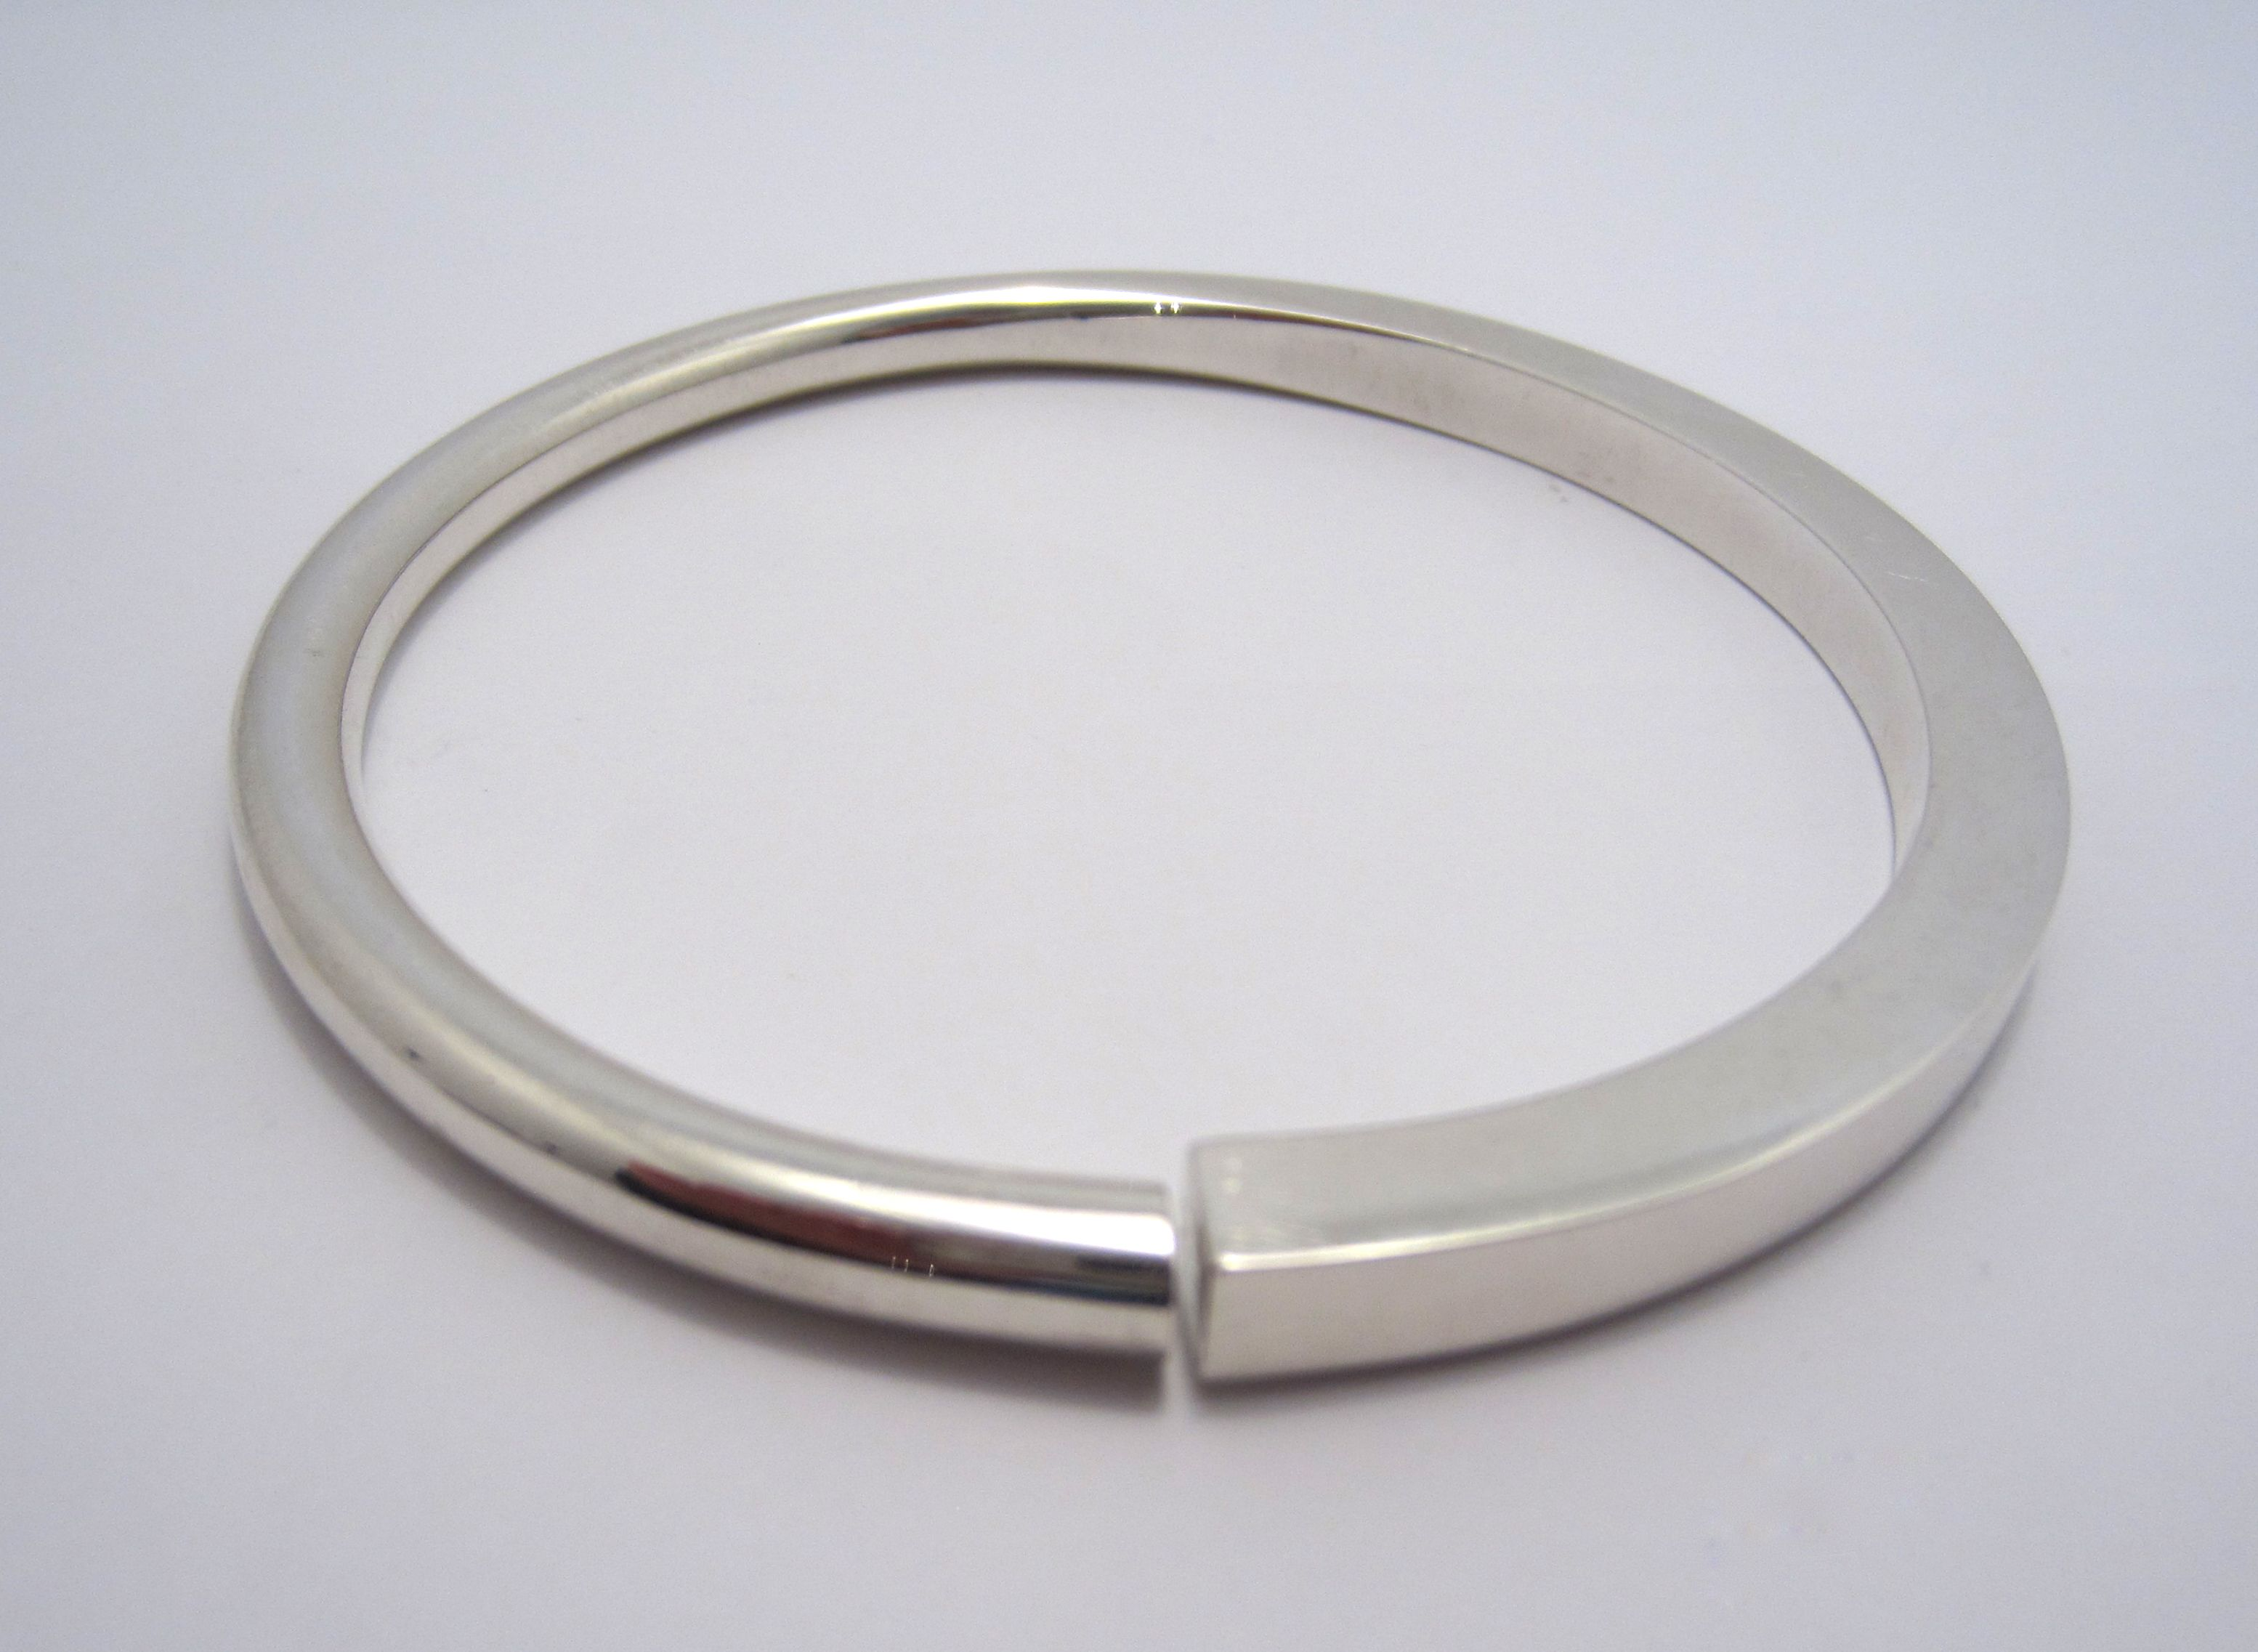 jewellery bracelets small solid bangle sterling bangles silver bracelet slider tennis